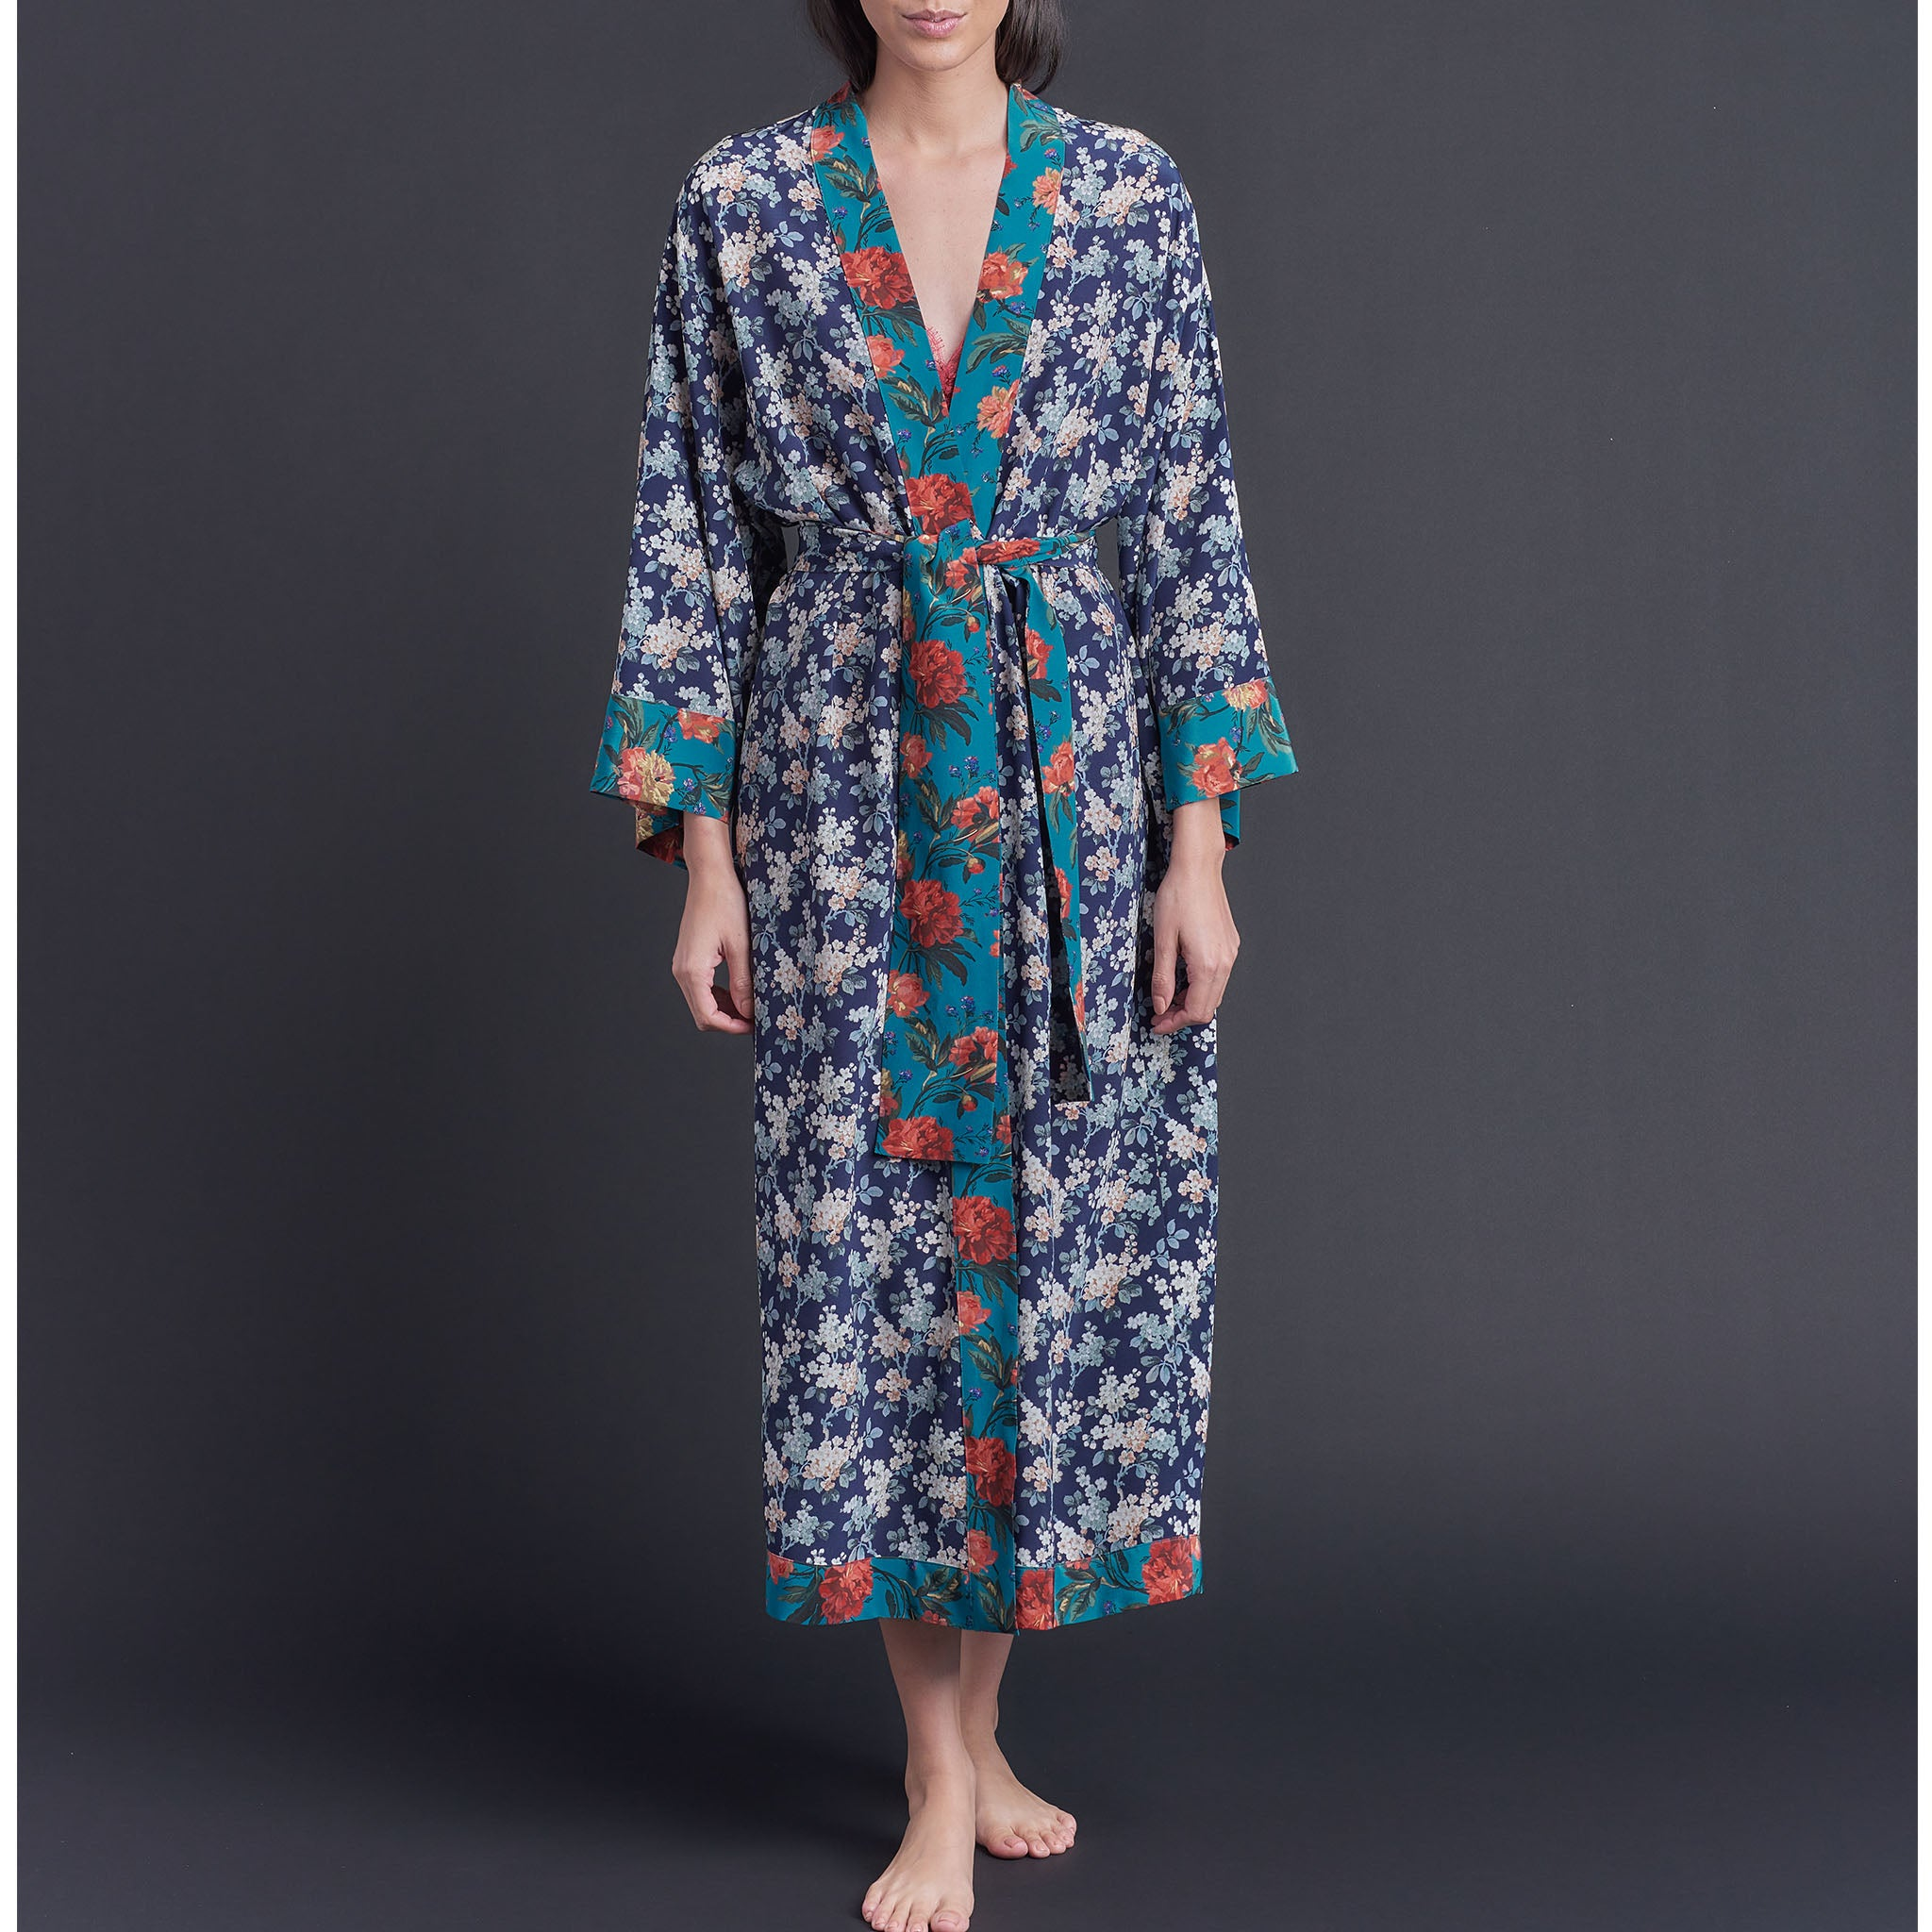 One of a Kind Asteria Kimono Robe in Blue Josephine Liberty of London Print Silk Crepe De Chine